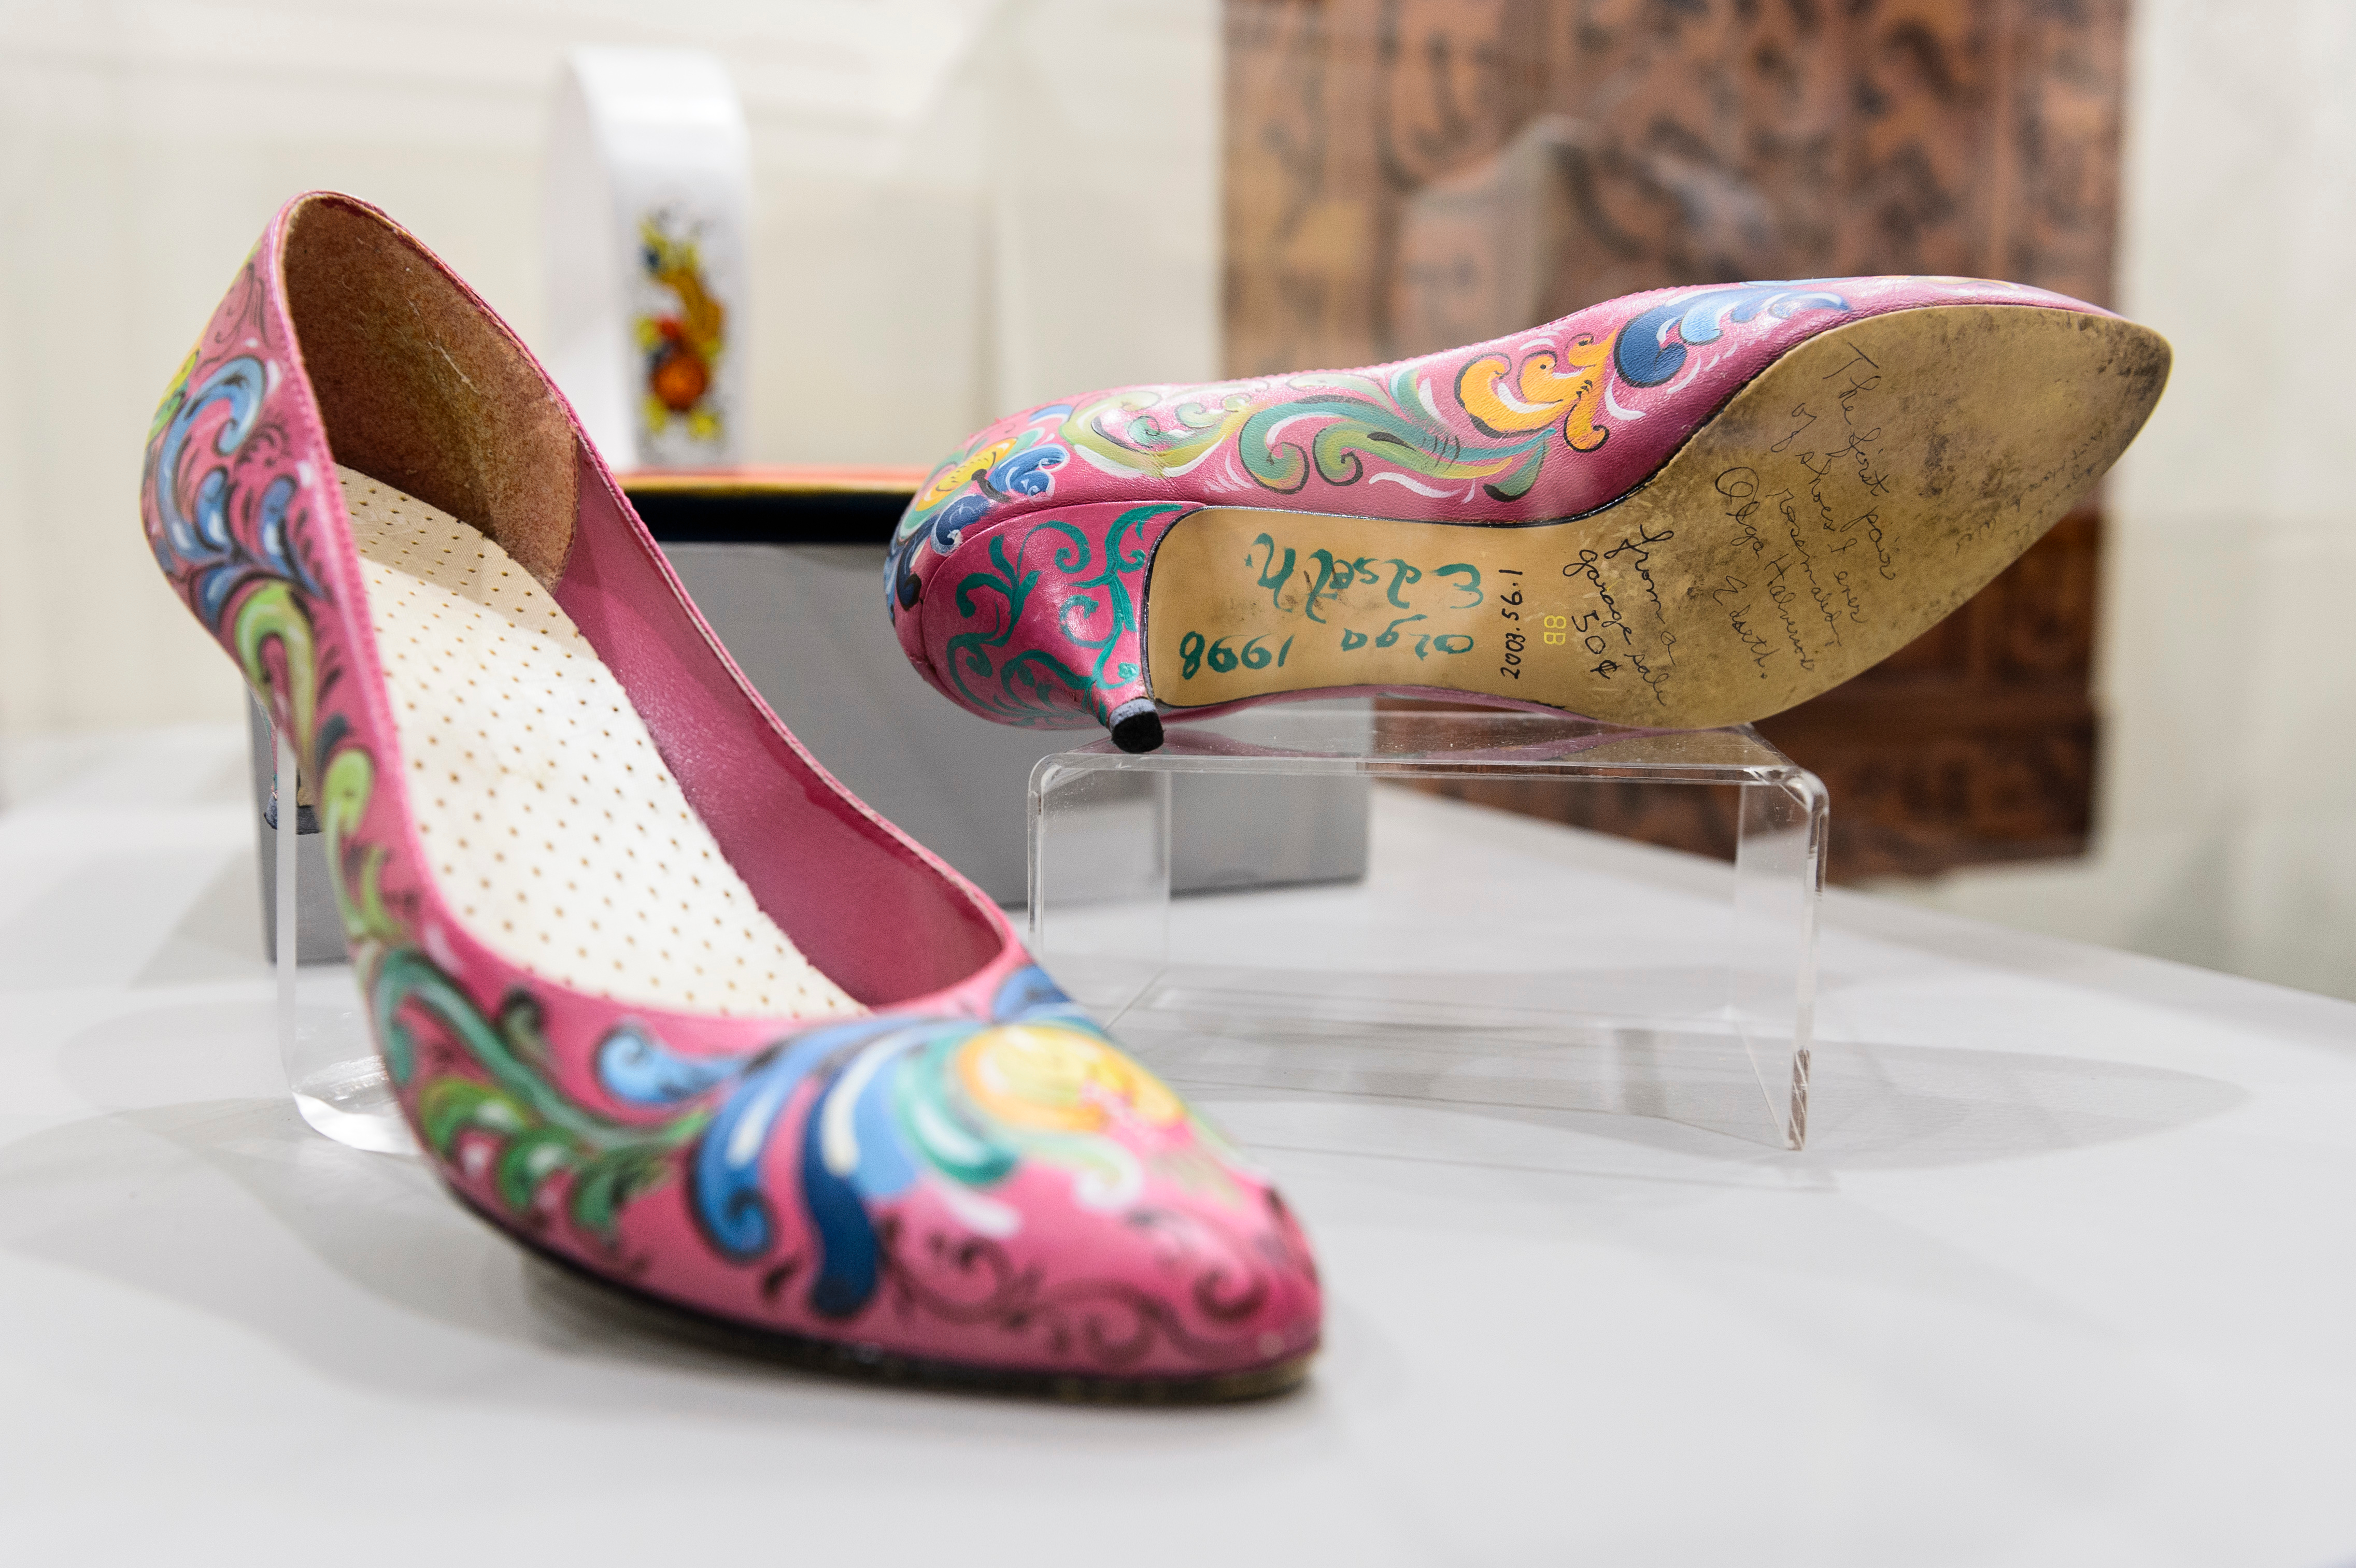 A pair of hot pink pumps rosemaled by Olga Edseth on display at the Driftless Historium in Mt. Horeb, Wisconsin